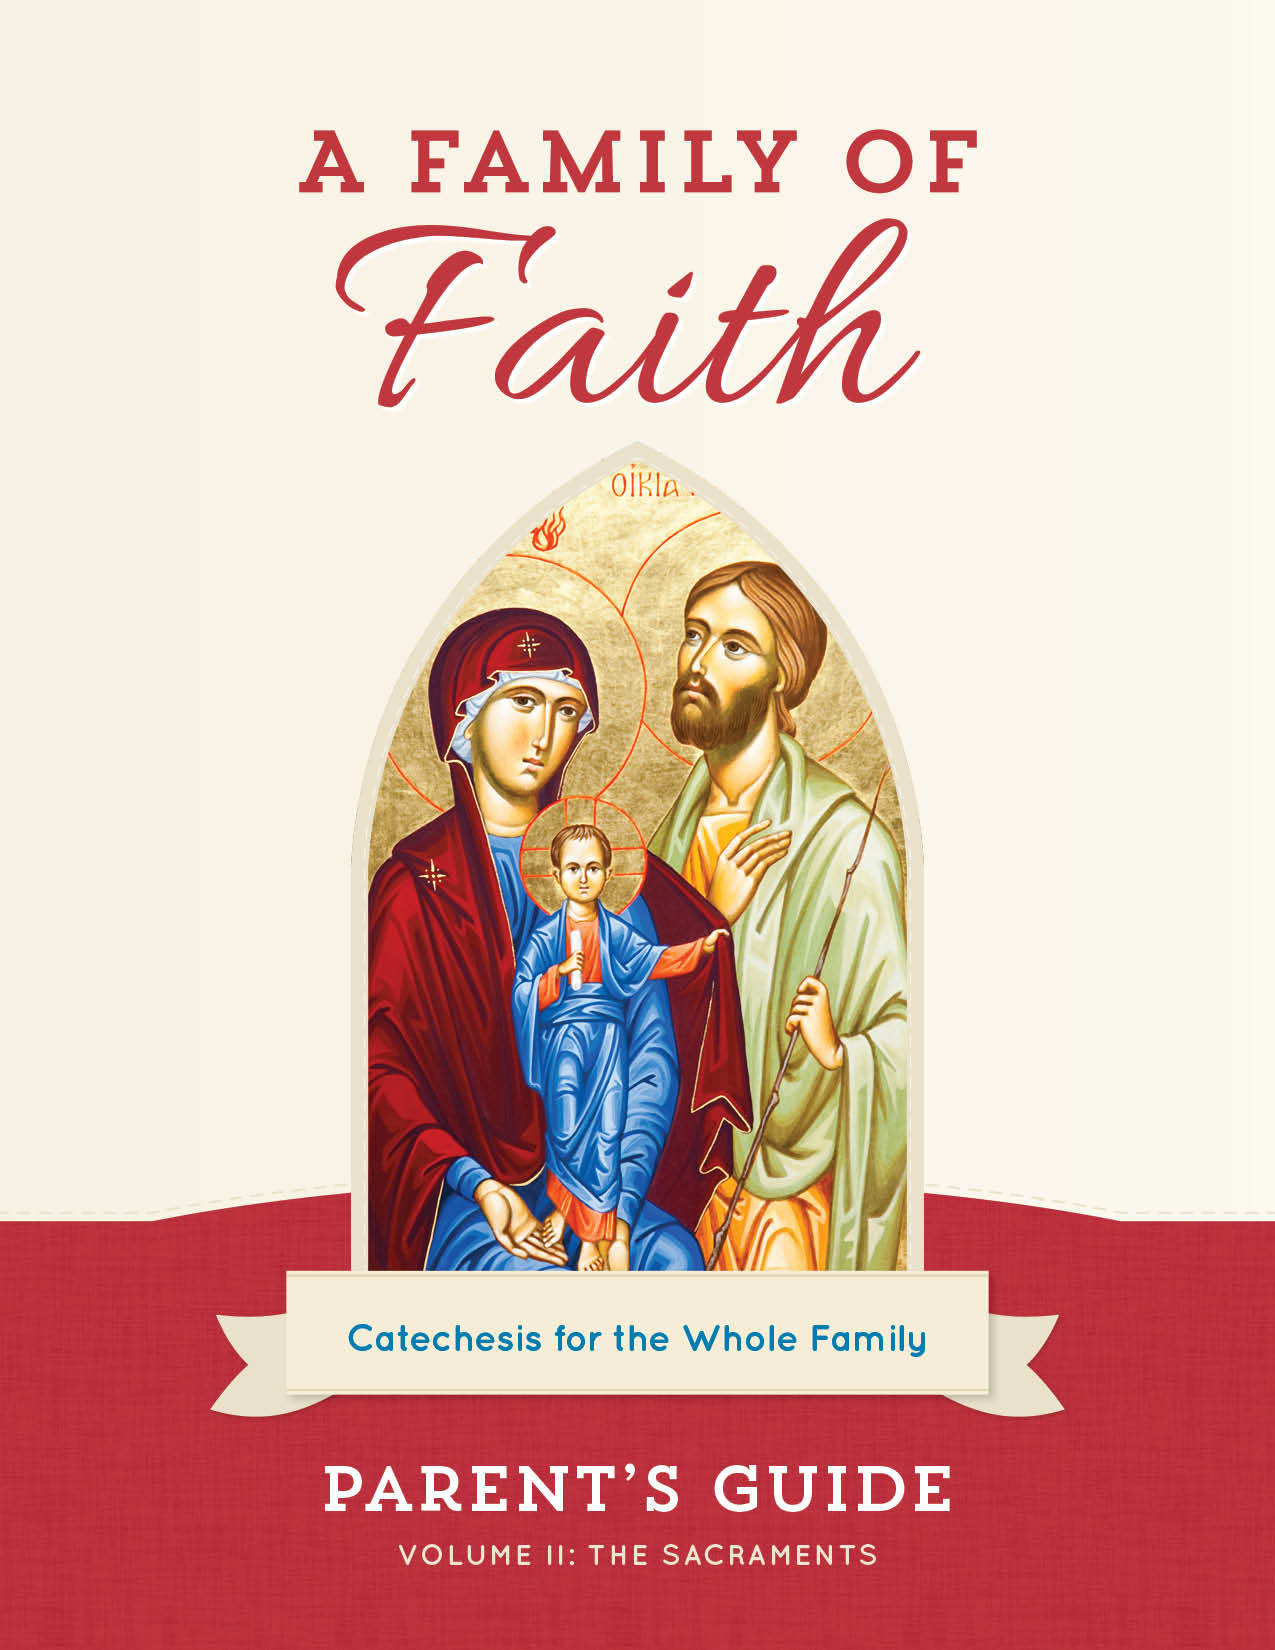 A Family of Faith Parent's Guide Volume II: The Sacraments